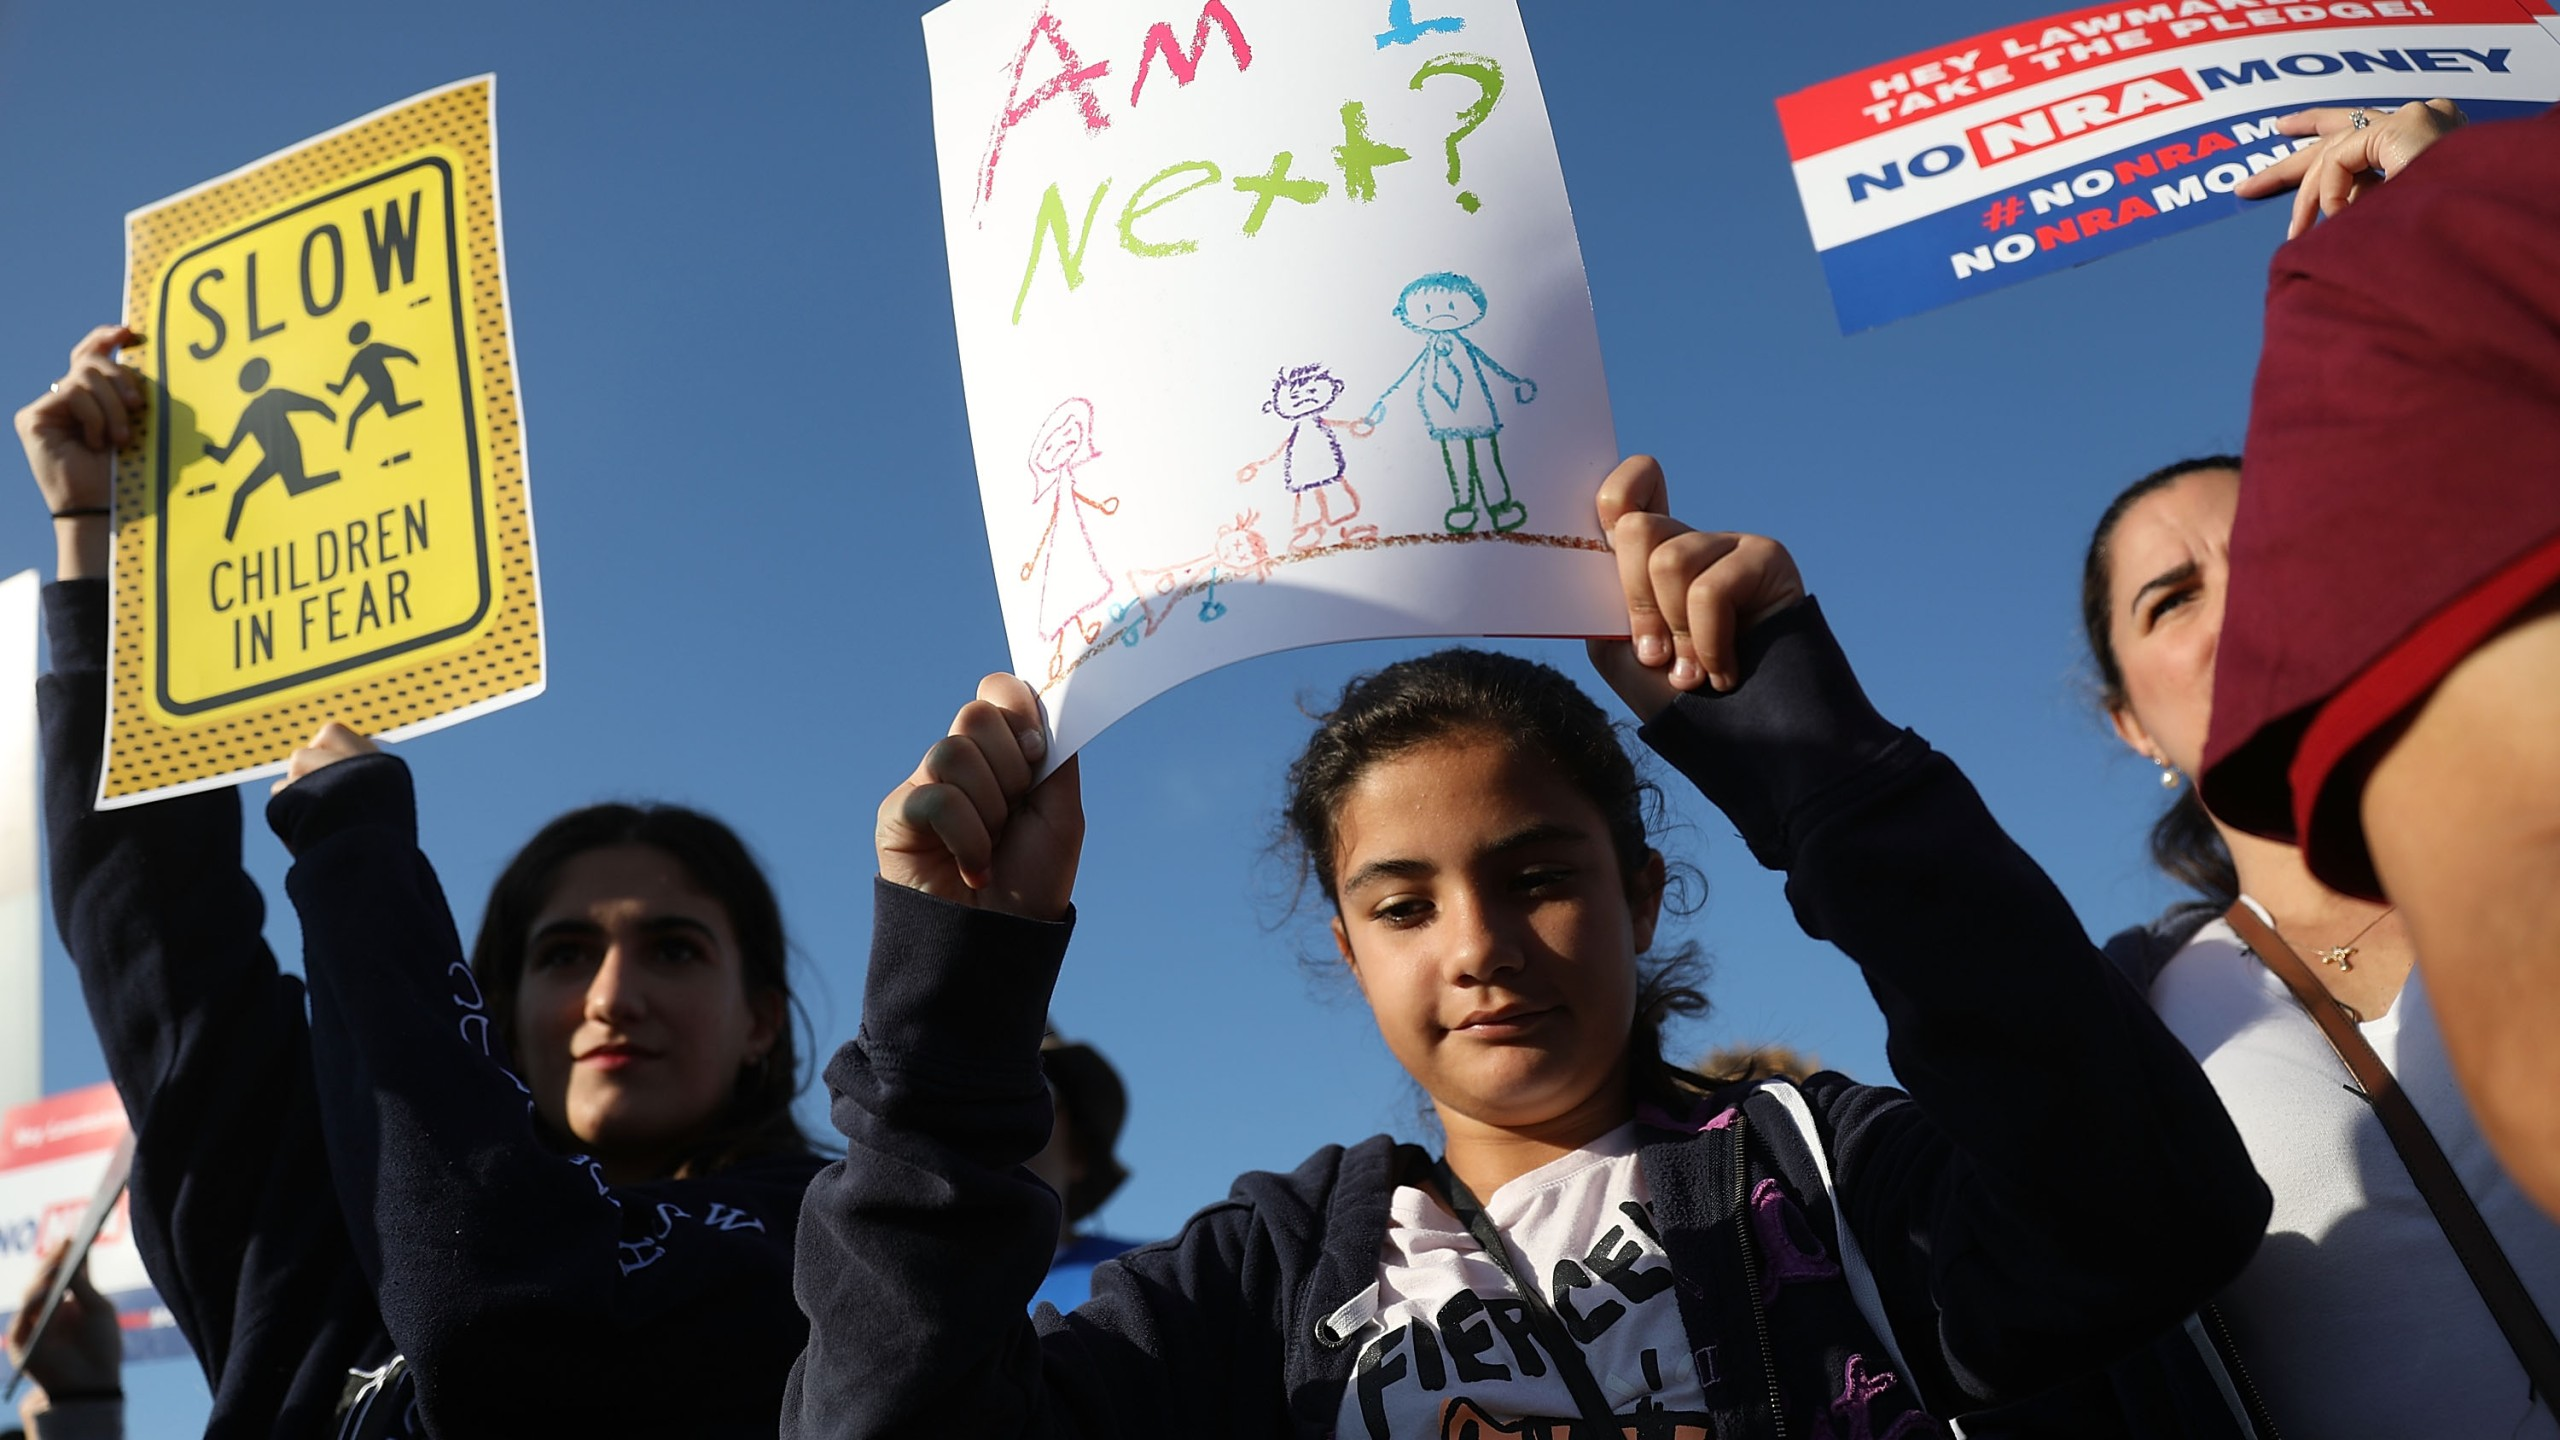 Cassandra Perry and Bianca Torres participate in the March For Our Lives event at Pine Trails Park before walking to Marjory Stoneman Douglas High School on March 24, 2018. (Credit: Joe Raedle/Getty Images)